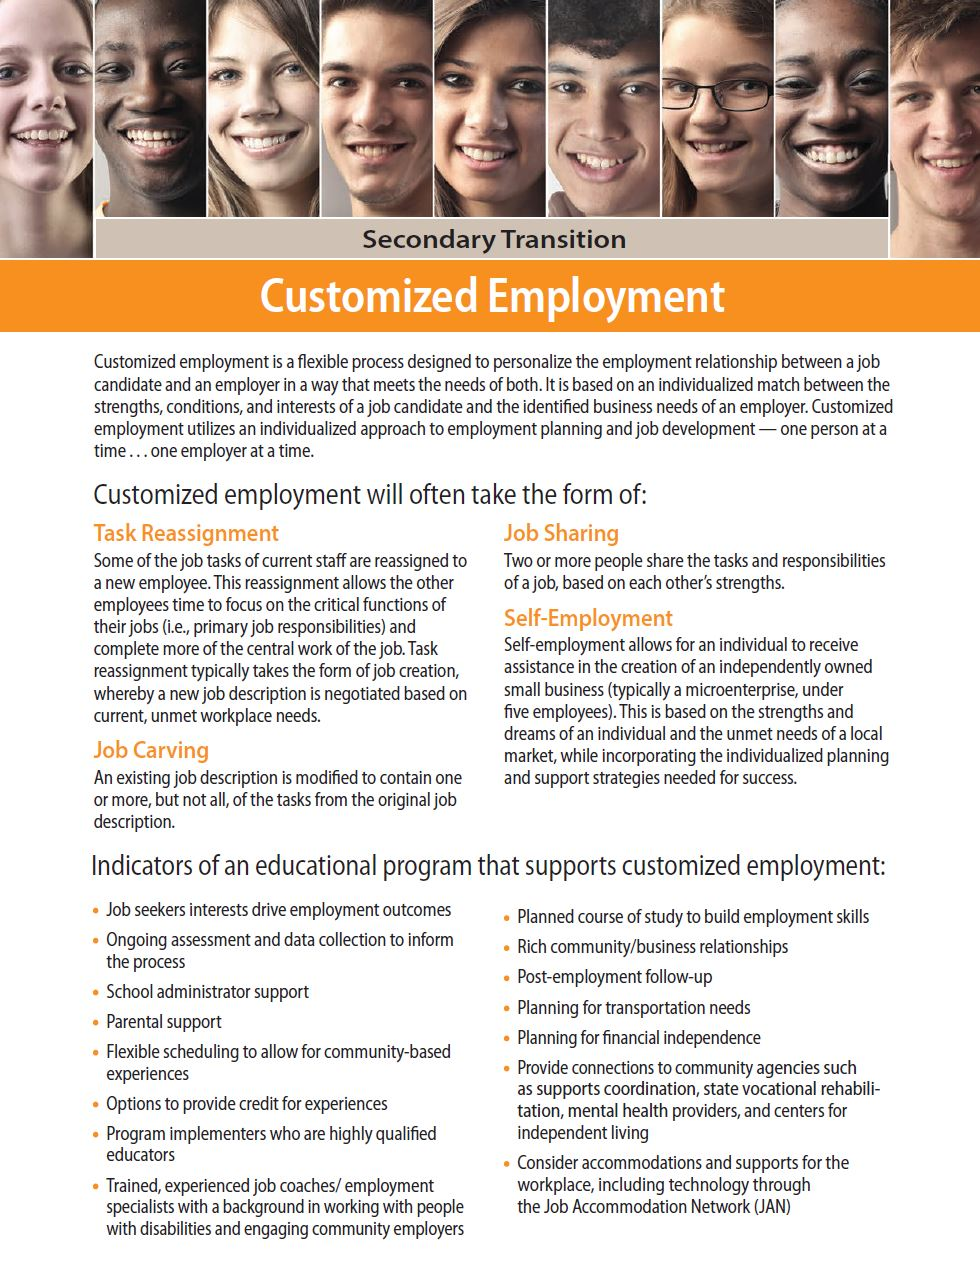 Secondary Transition: Customized Employment